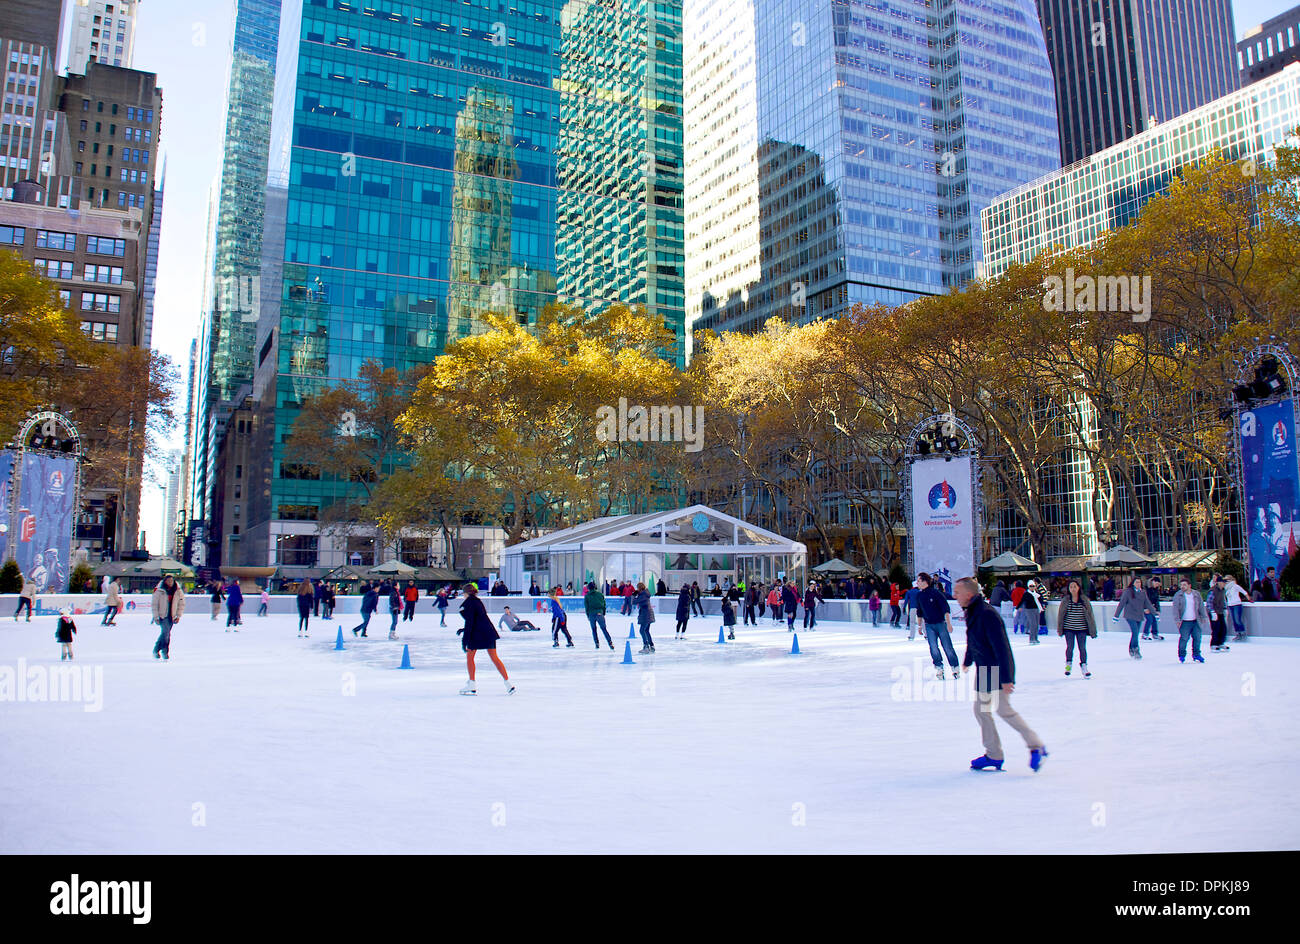 People Skating On Ice At Bryant Park Manhattan New York City Ny United States Of America Usa Leisure Fun Sport Recreation